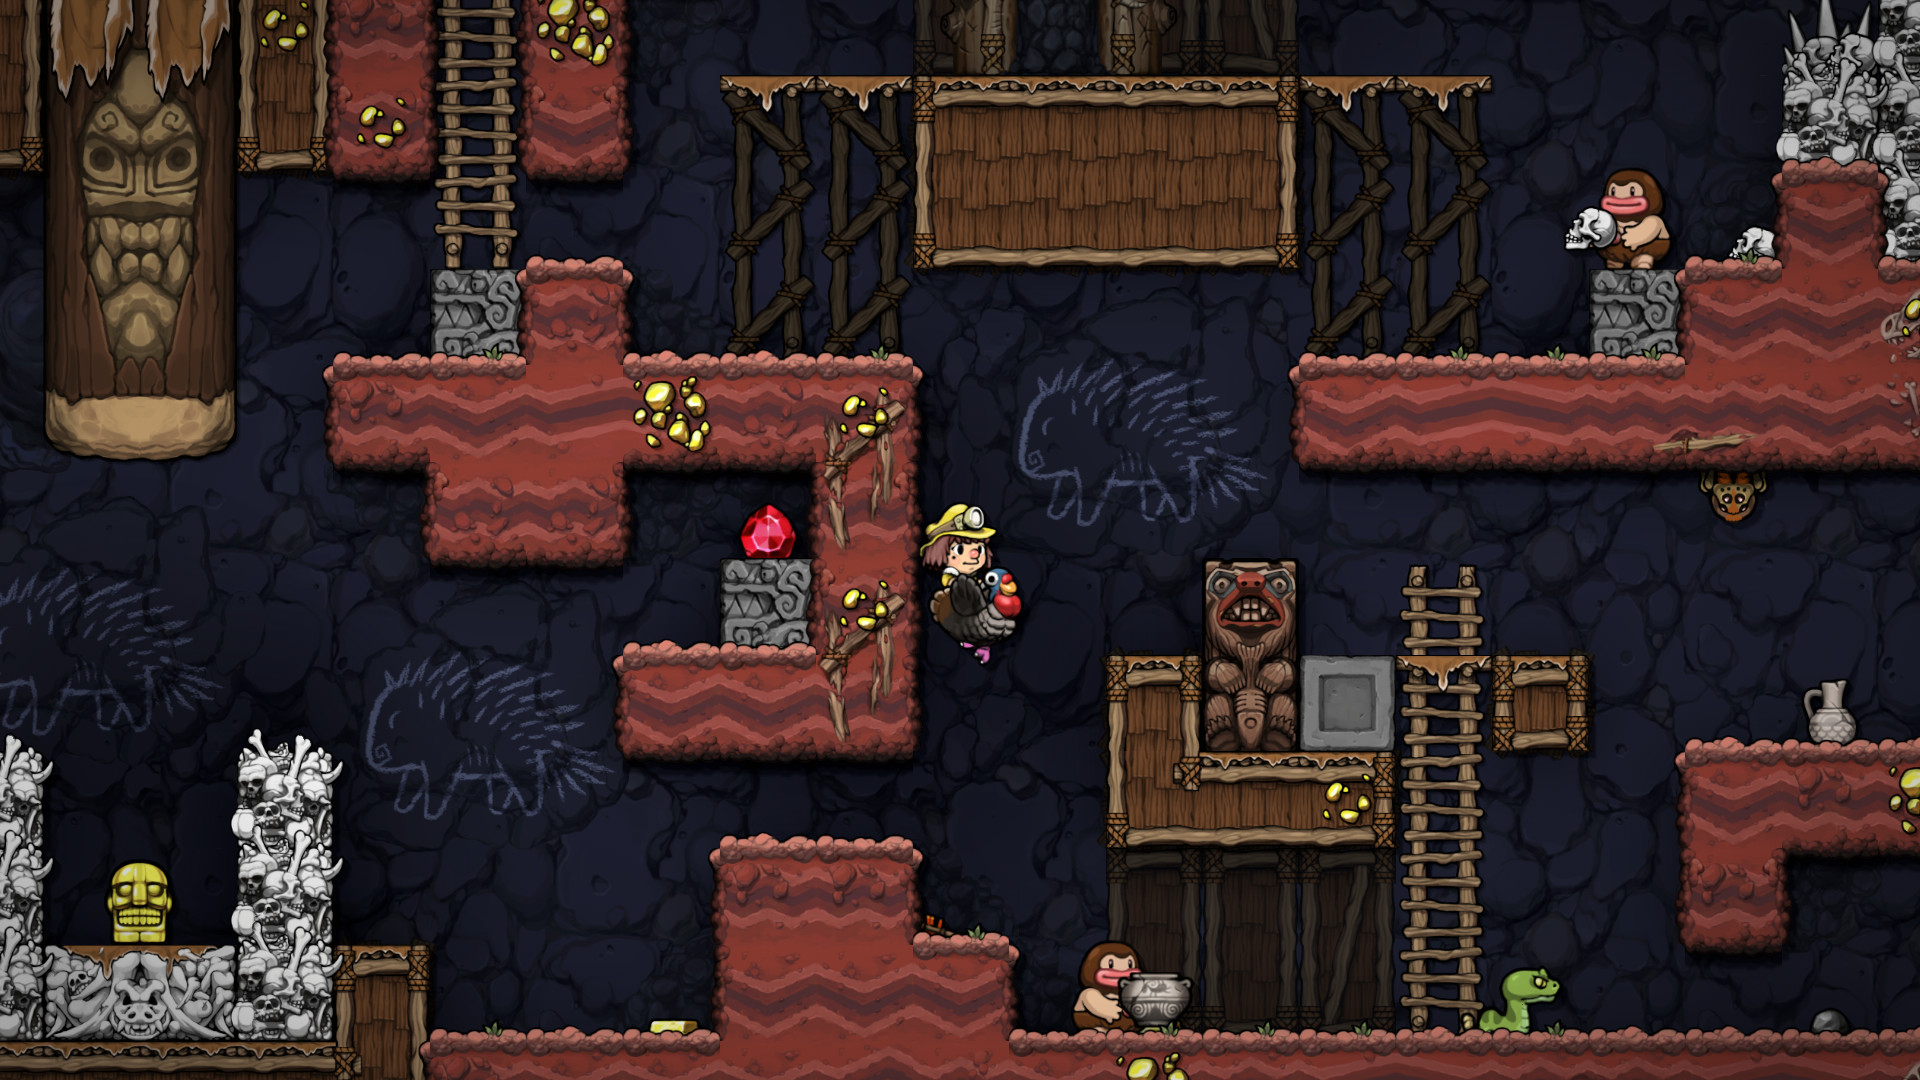 Best Ps4 games of 2020 - Spelunky 2